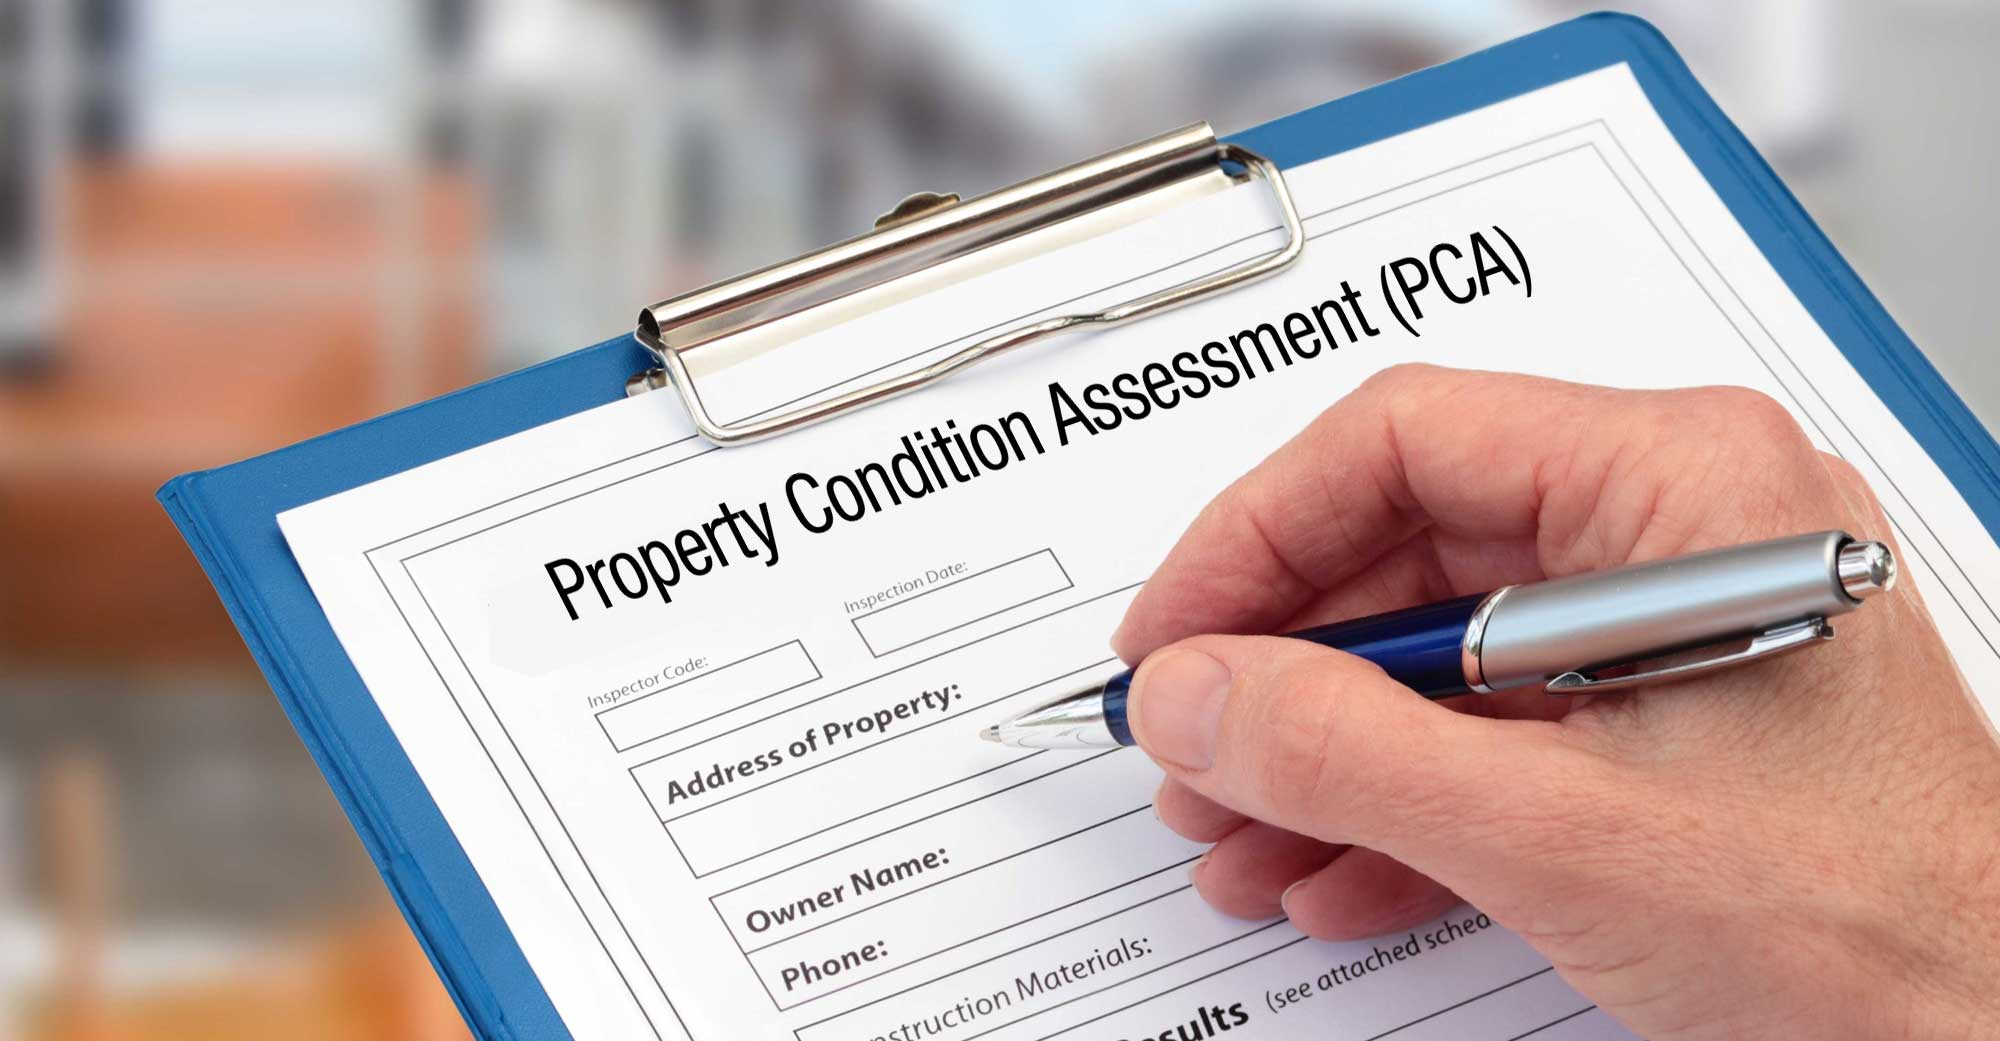 Property Condition Assessment (PCA)